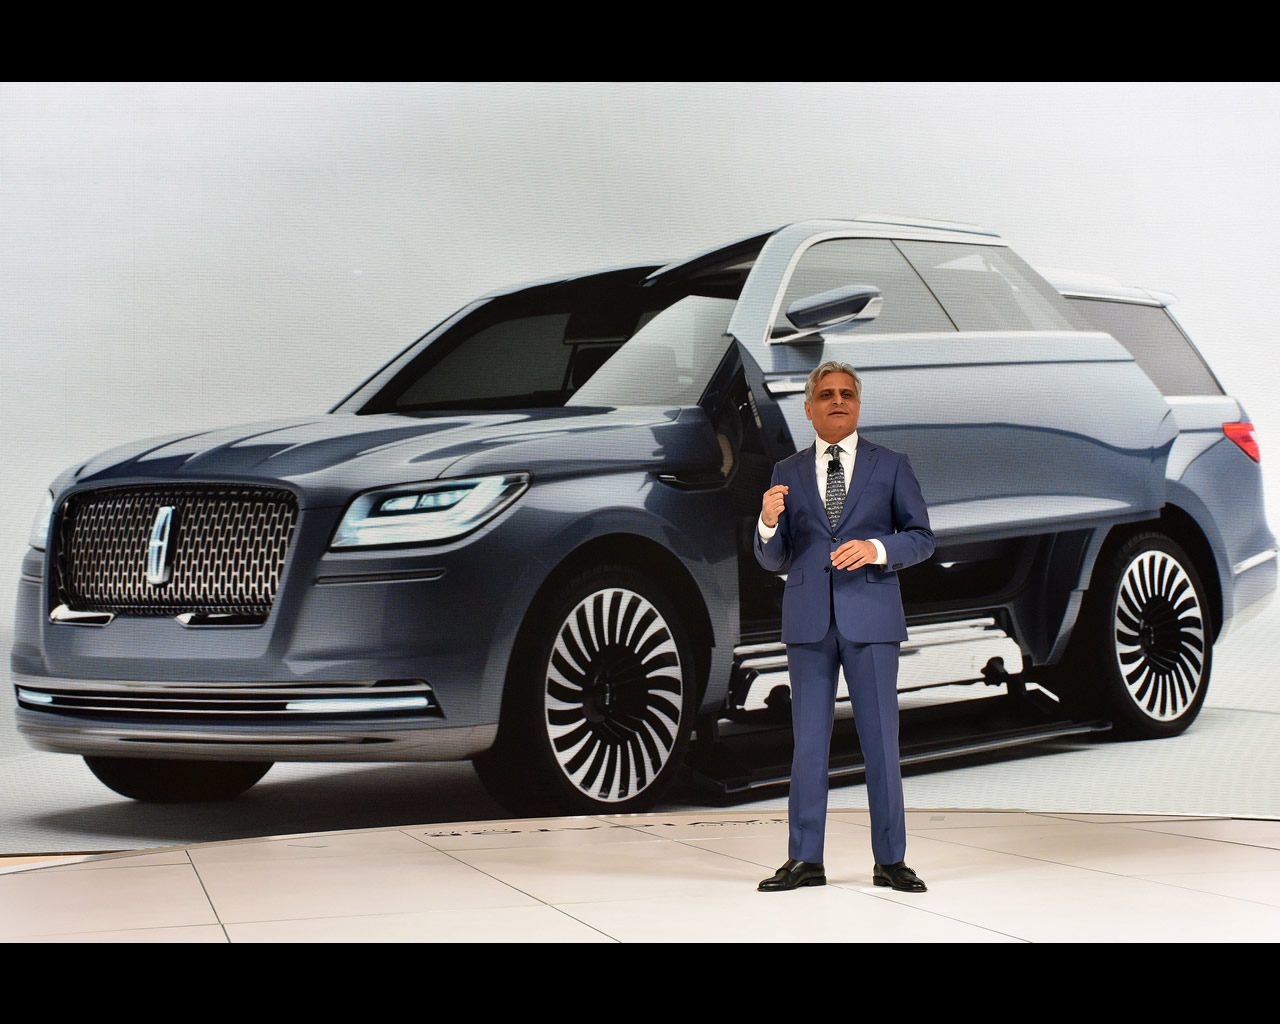 http://www.autoconcept-reviews.com/cars_reviews/ford/ford-group-lincoln-navigator-concept-2016/wallpapers/lincoln-navigator-concept-2016-3.jpg